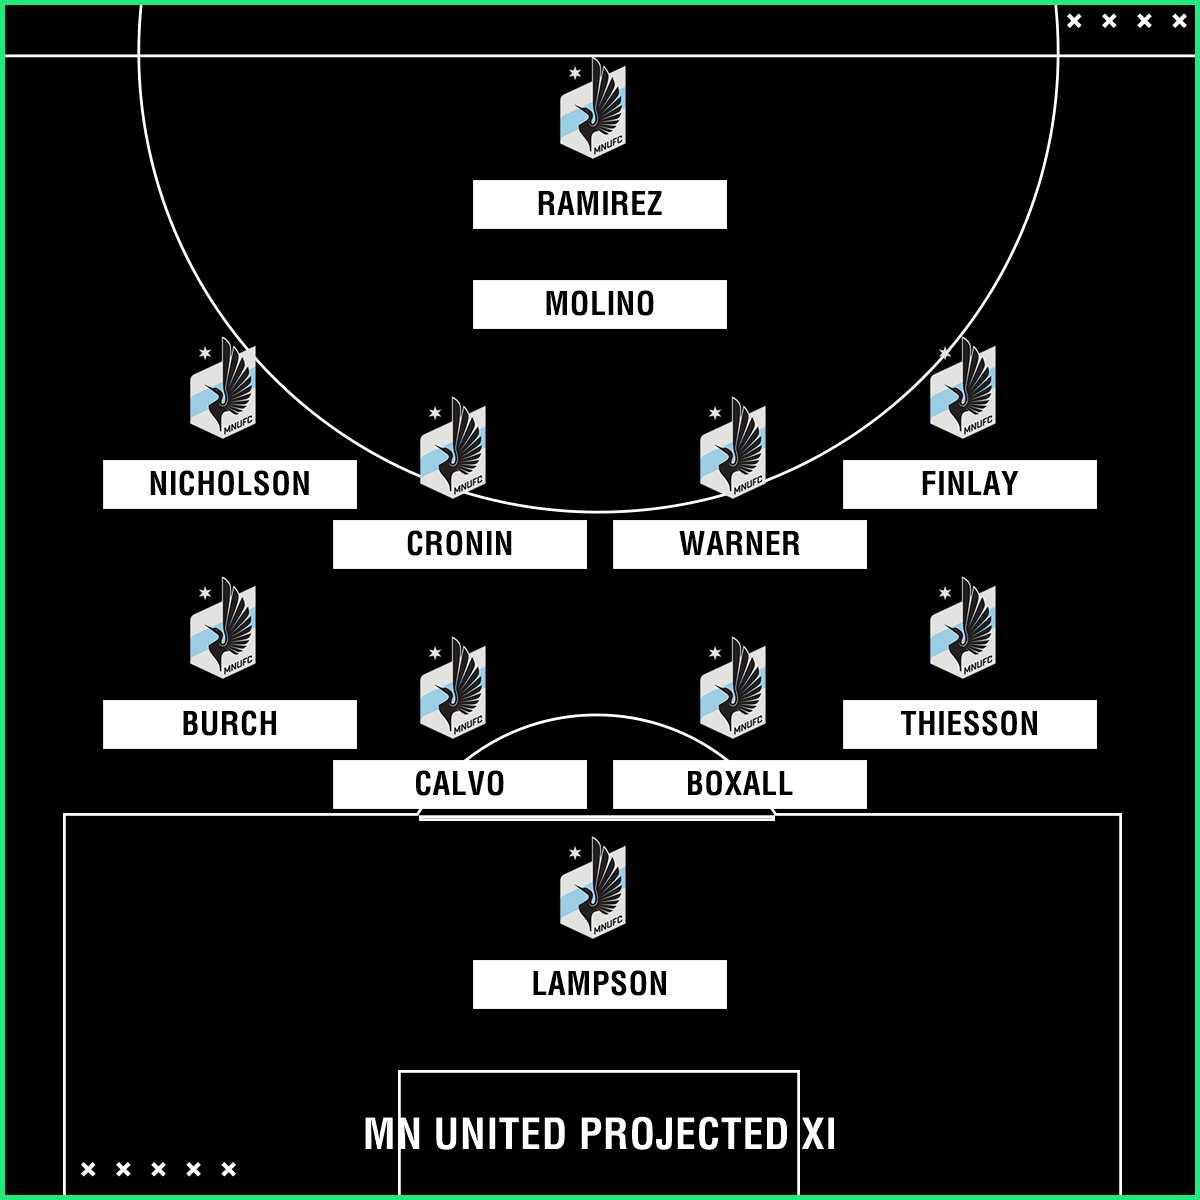 Minnesota United projected XI